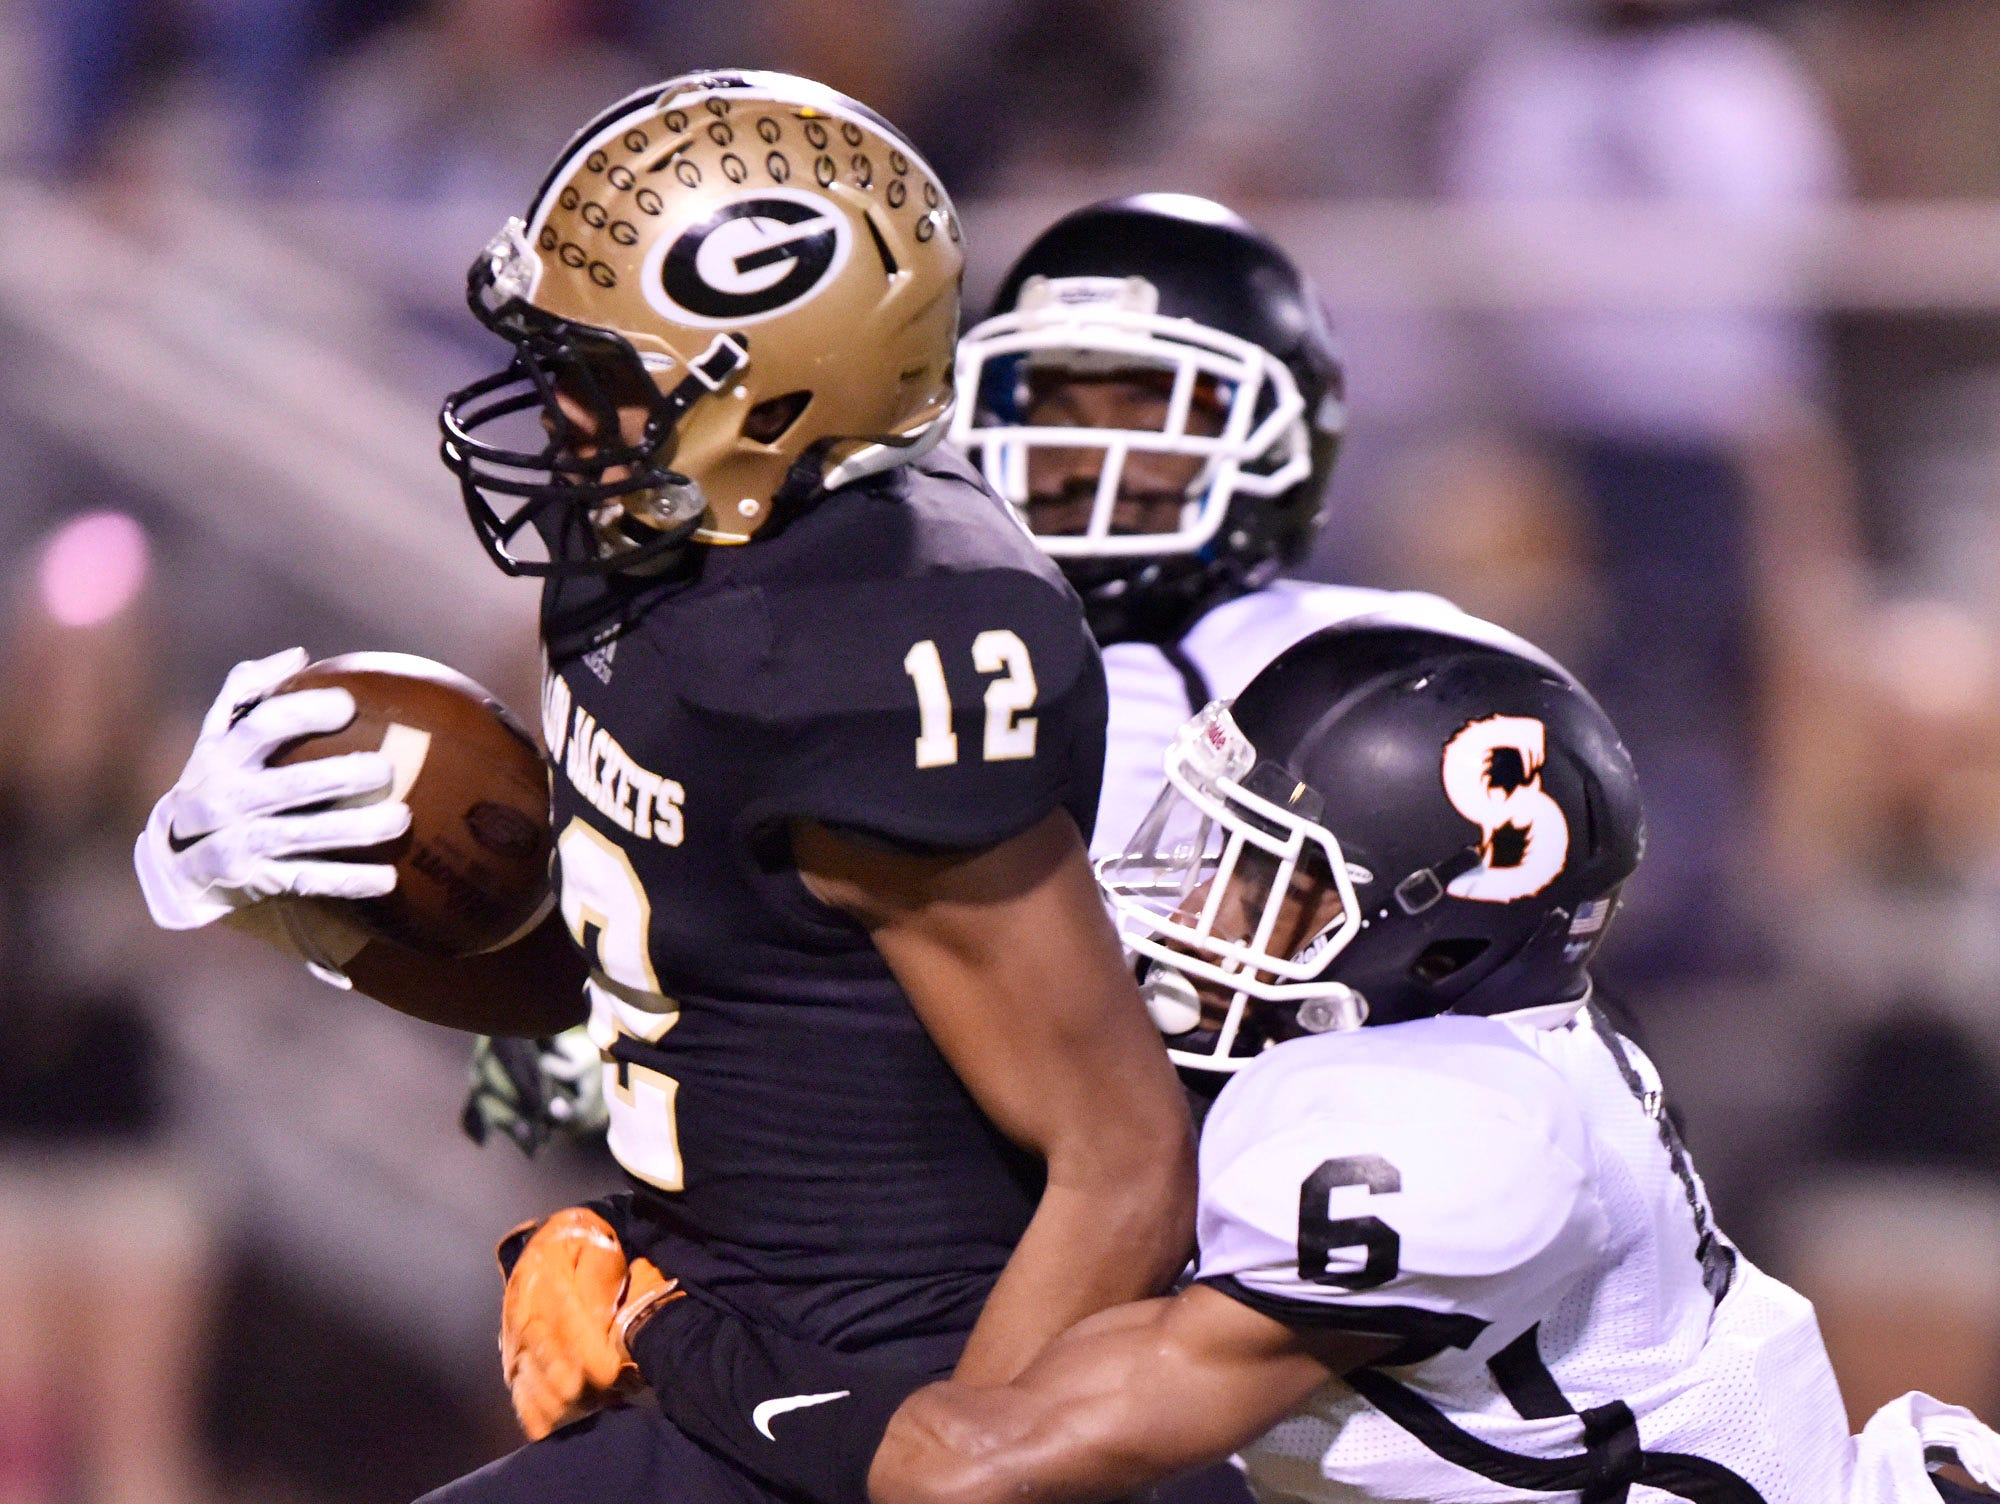 With Southside's Keenan Stephens (6) in tow, Greer's Dorian Lindsey (12) picks up a big gain.